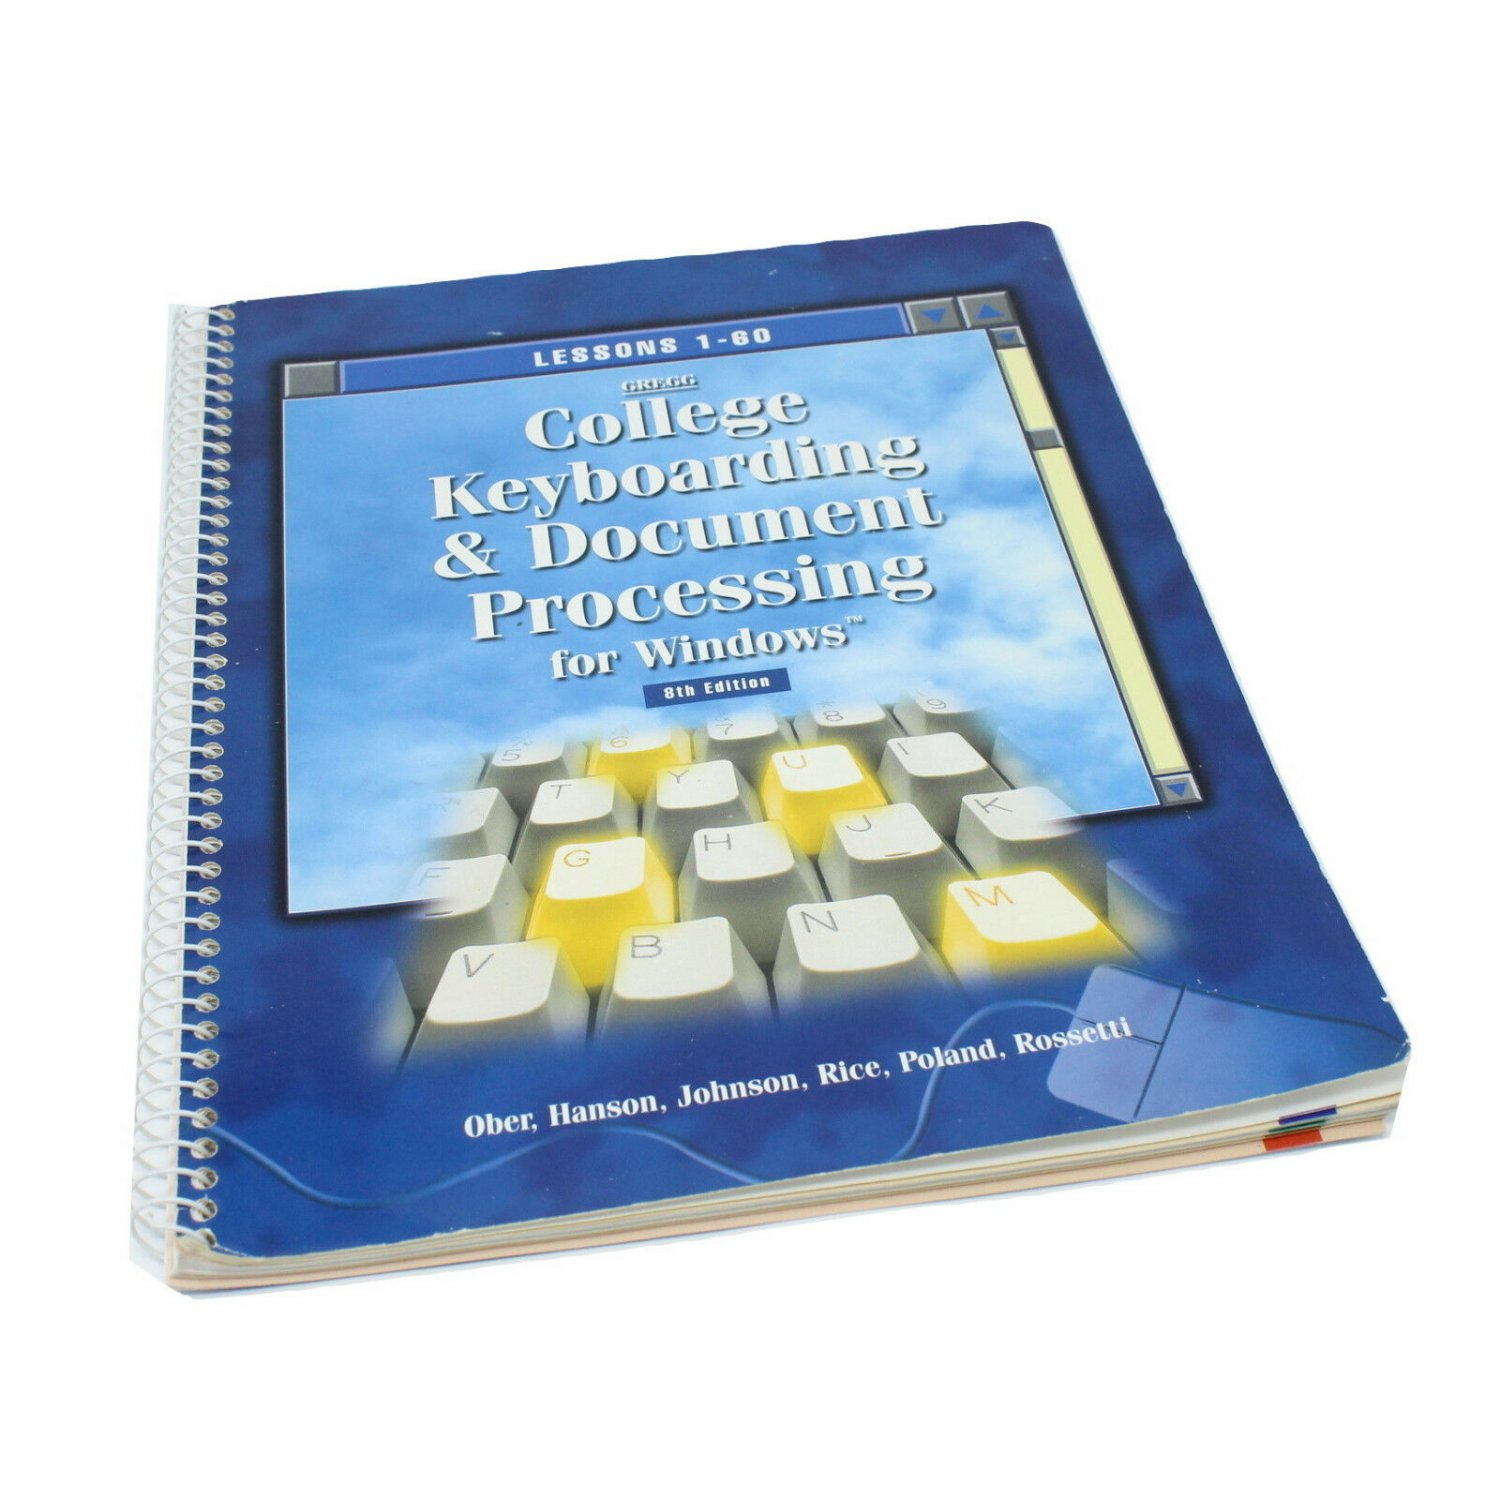 Gregg College Keyboarding & Document Processing for Windows Lessons 1-60